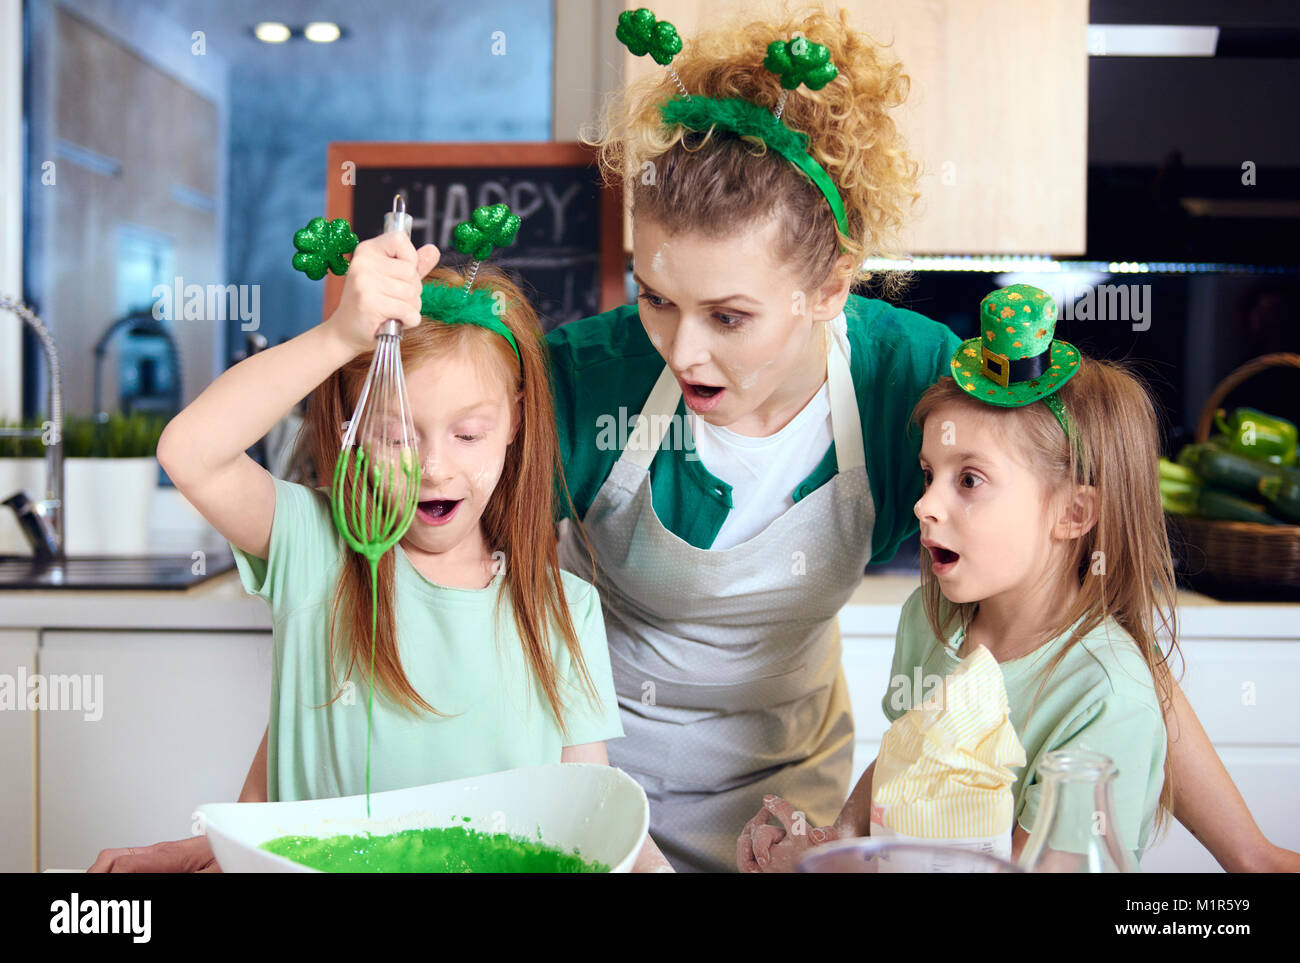 Shocked mother with daughters mixing fondant icing - Stock Image